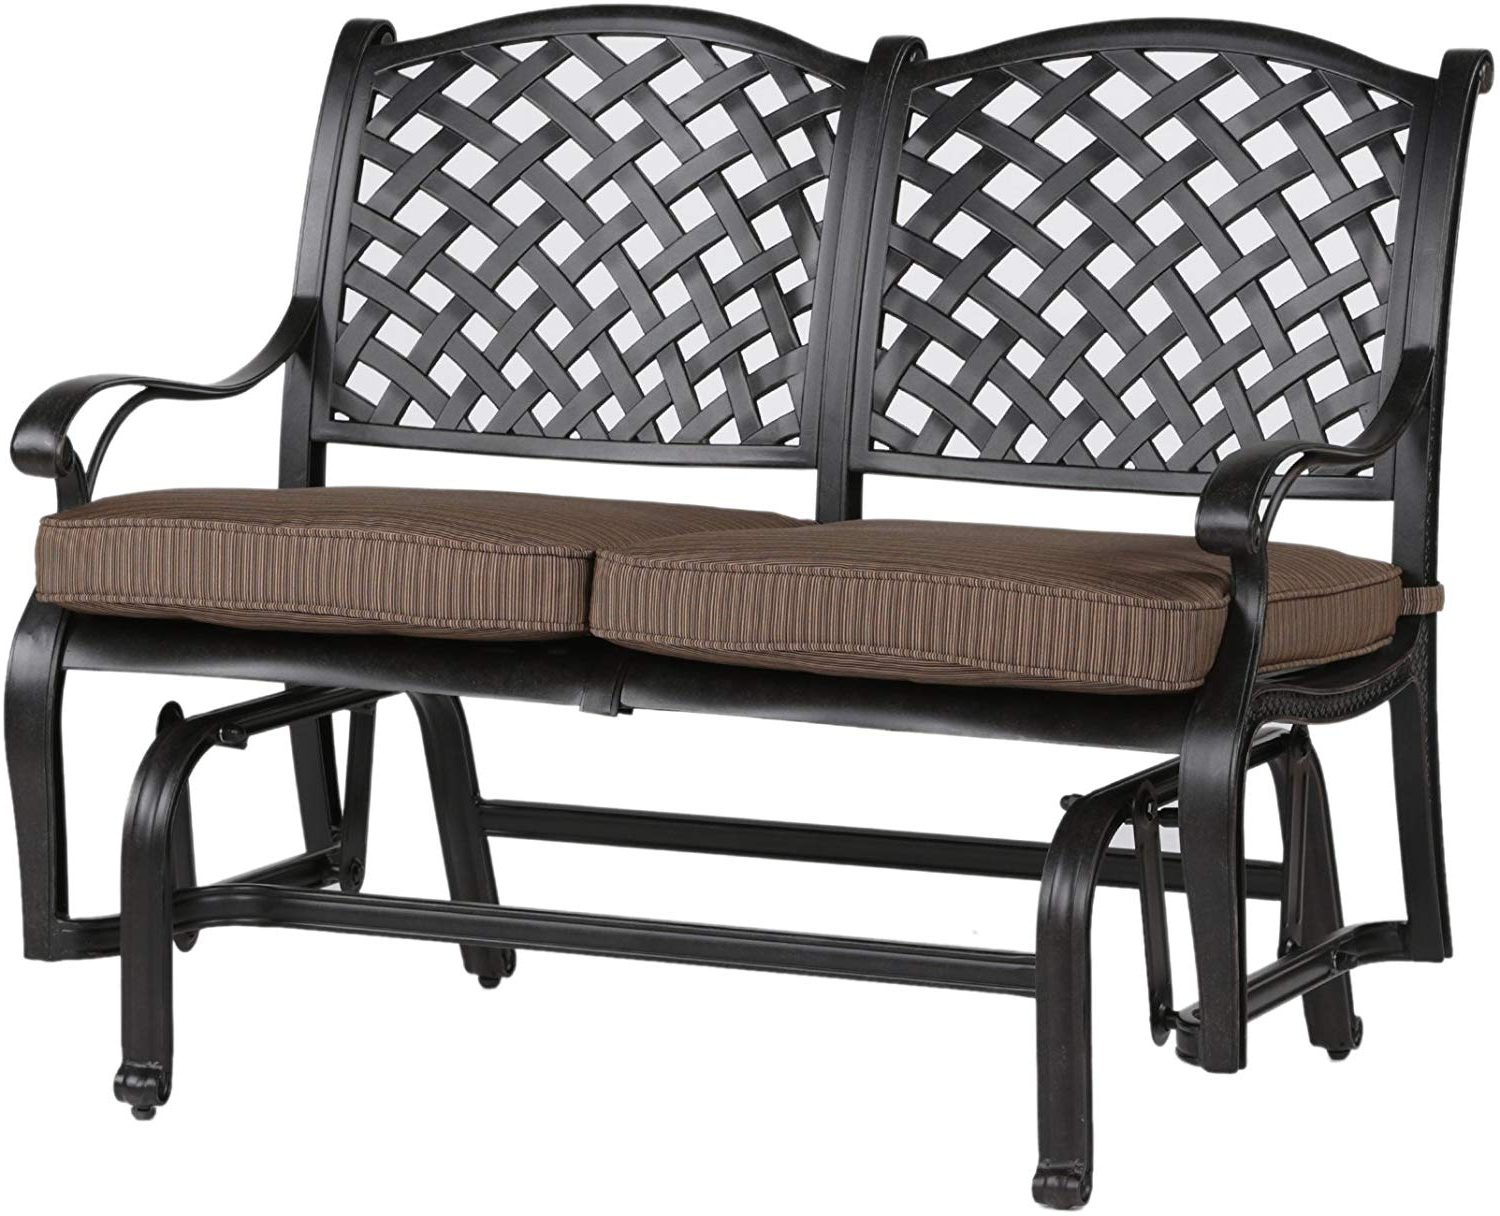 Ipatio Sparta Bench Glider With Cushion – Outdoor Metal Glider Within Popular Glider Benches With Cushions (View 18 of 30)